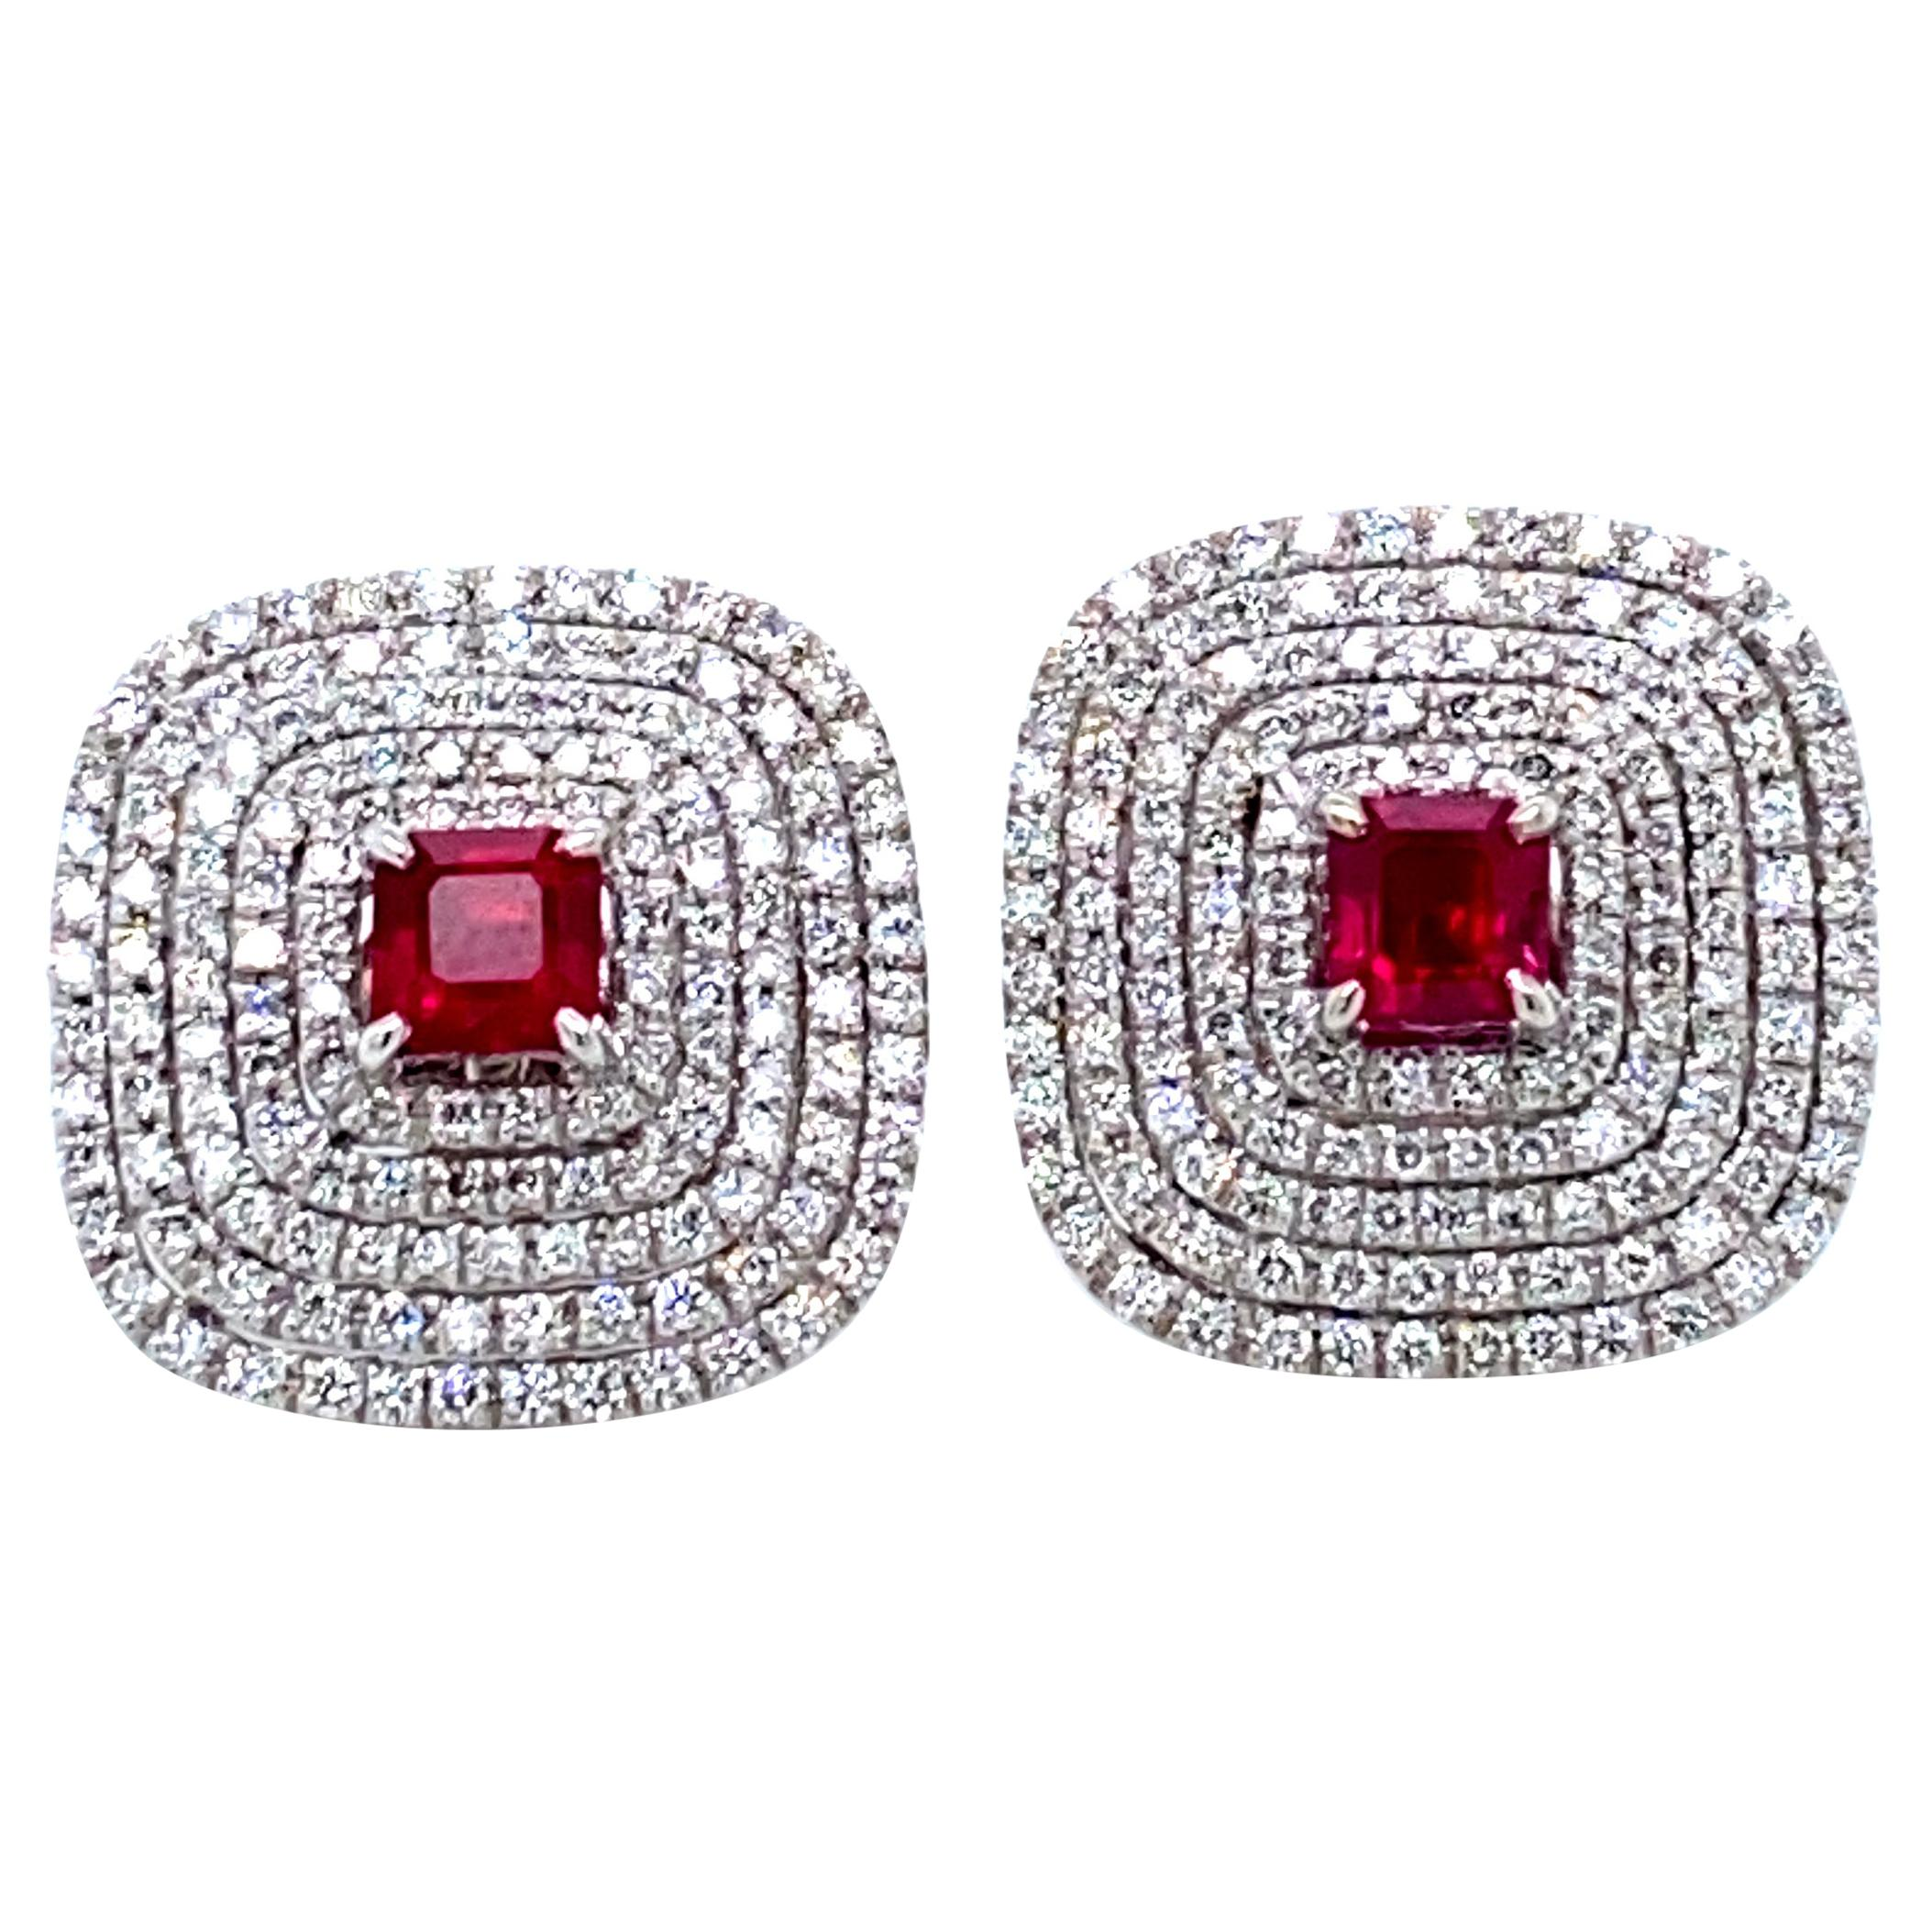 1.72 Carat Vivid Red Ruby and White Diamond Gold Earrings